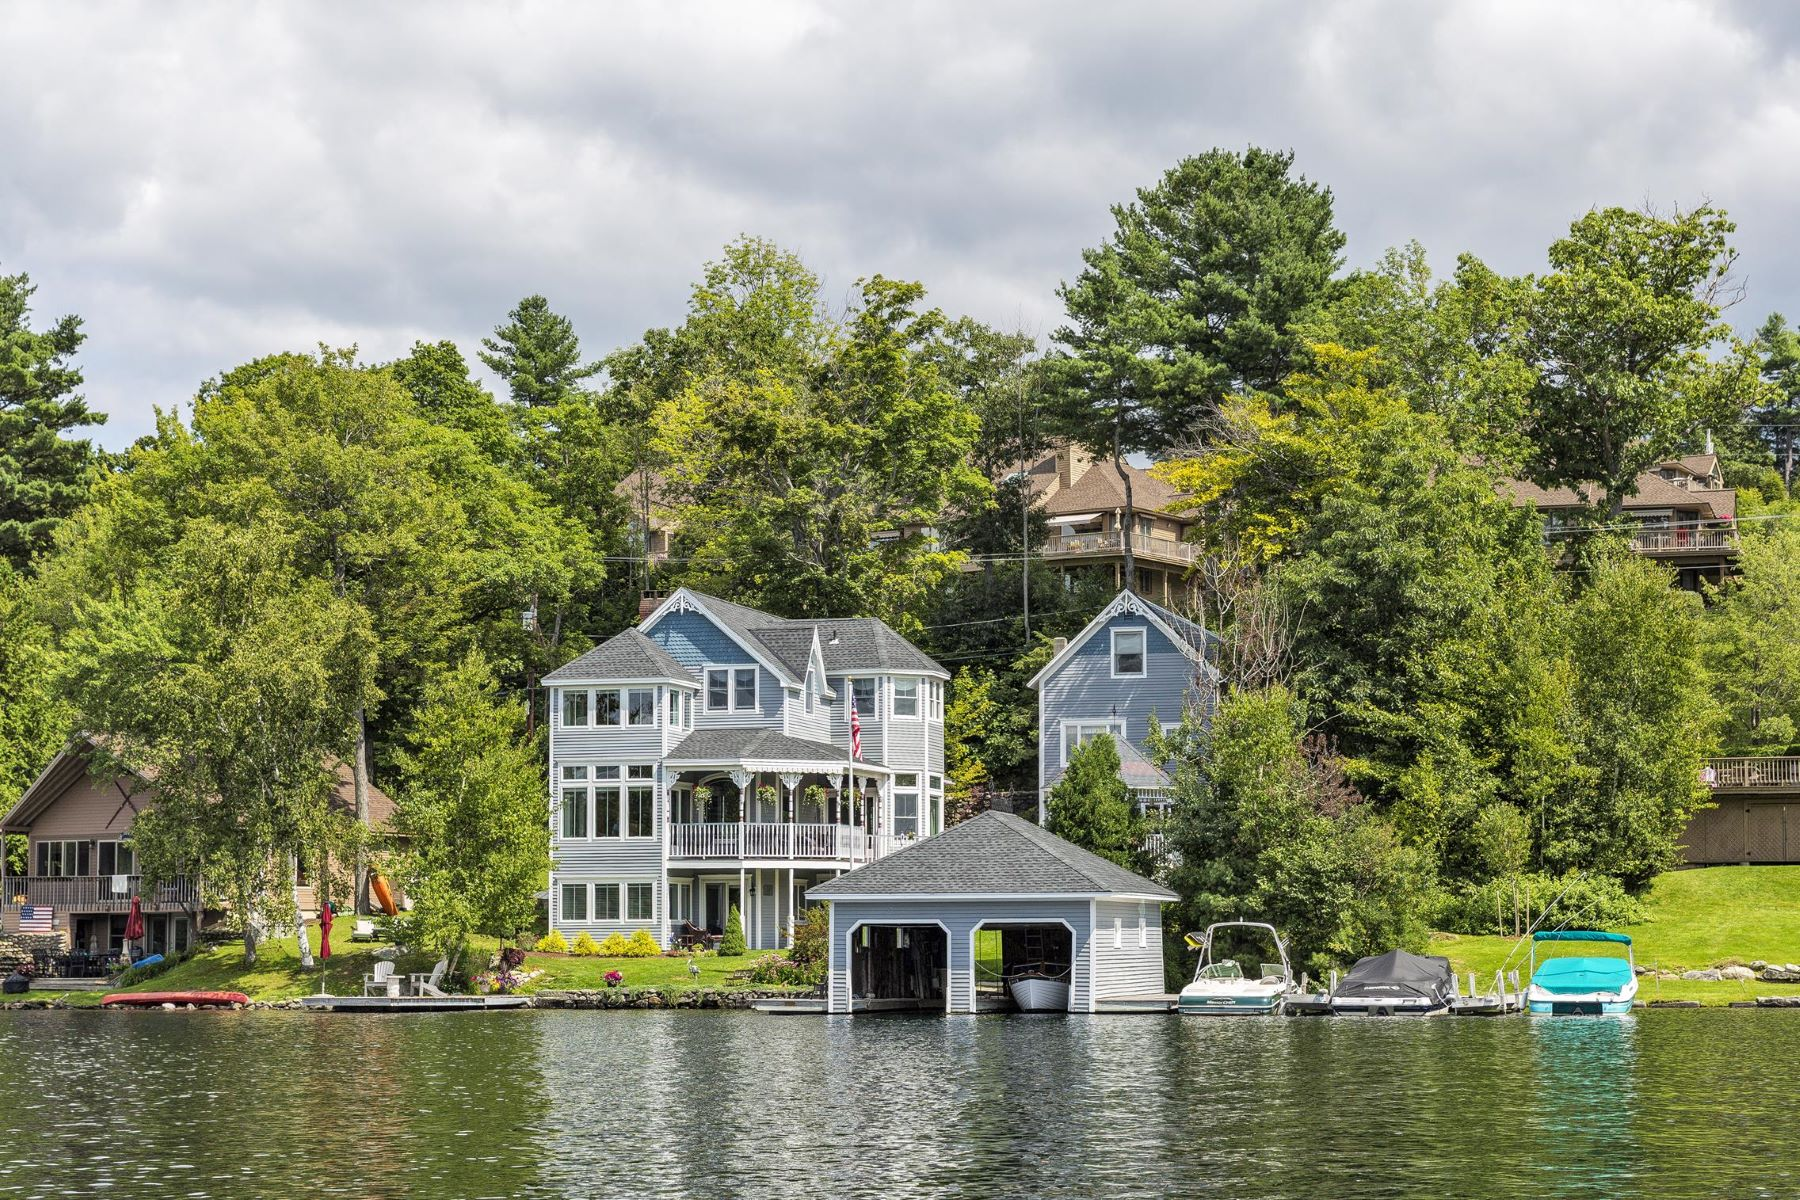 Single Family Home for Sale at Stunning Property on Lake Sunapee 87 Lake Ave Sunapee, New Hampshire 03782 United States